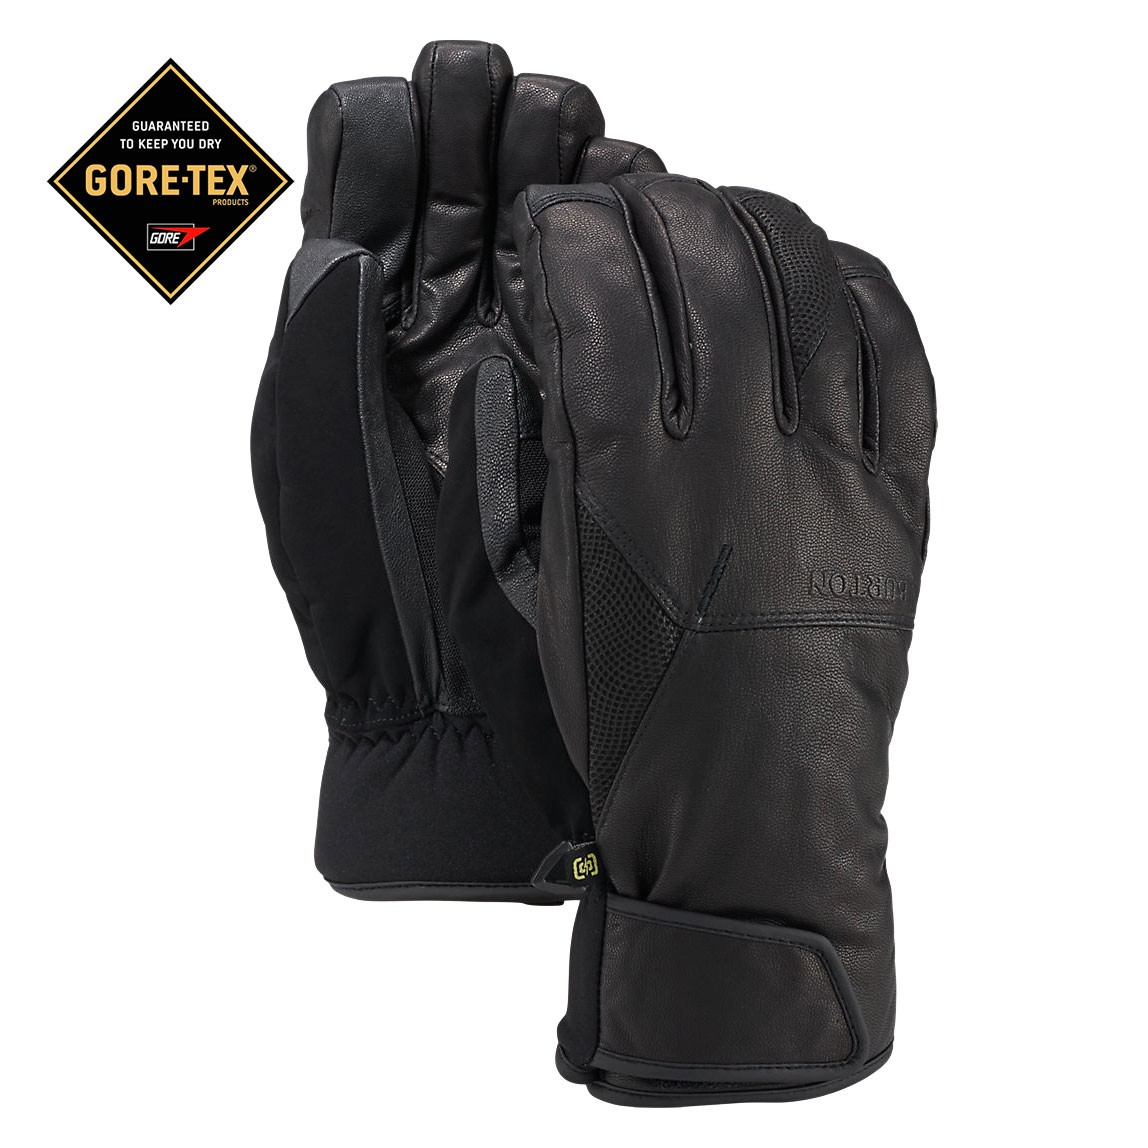 Rukavice Burton Gondy Gore Leather Mitt true black vel.L 16/17 + doručení do 24 hodin